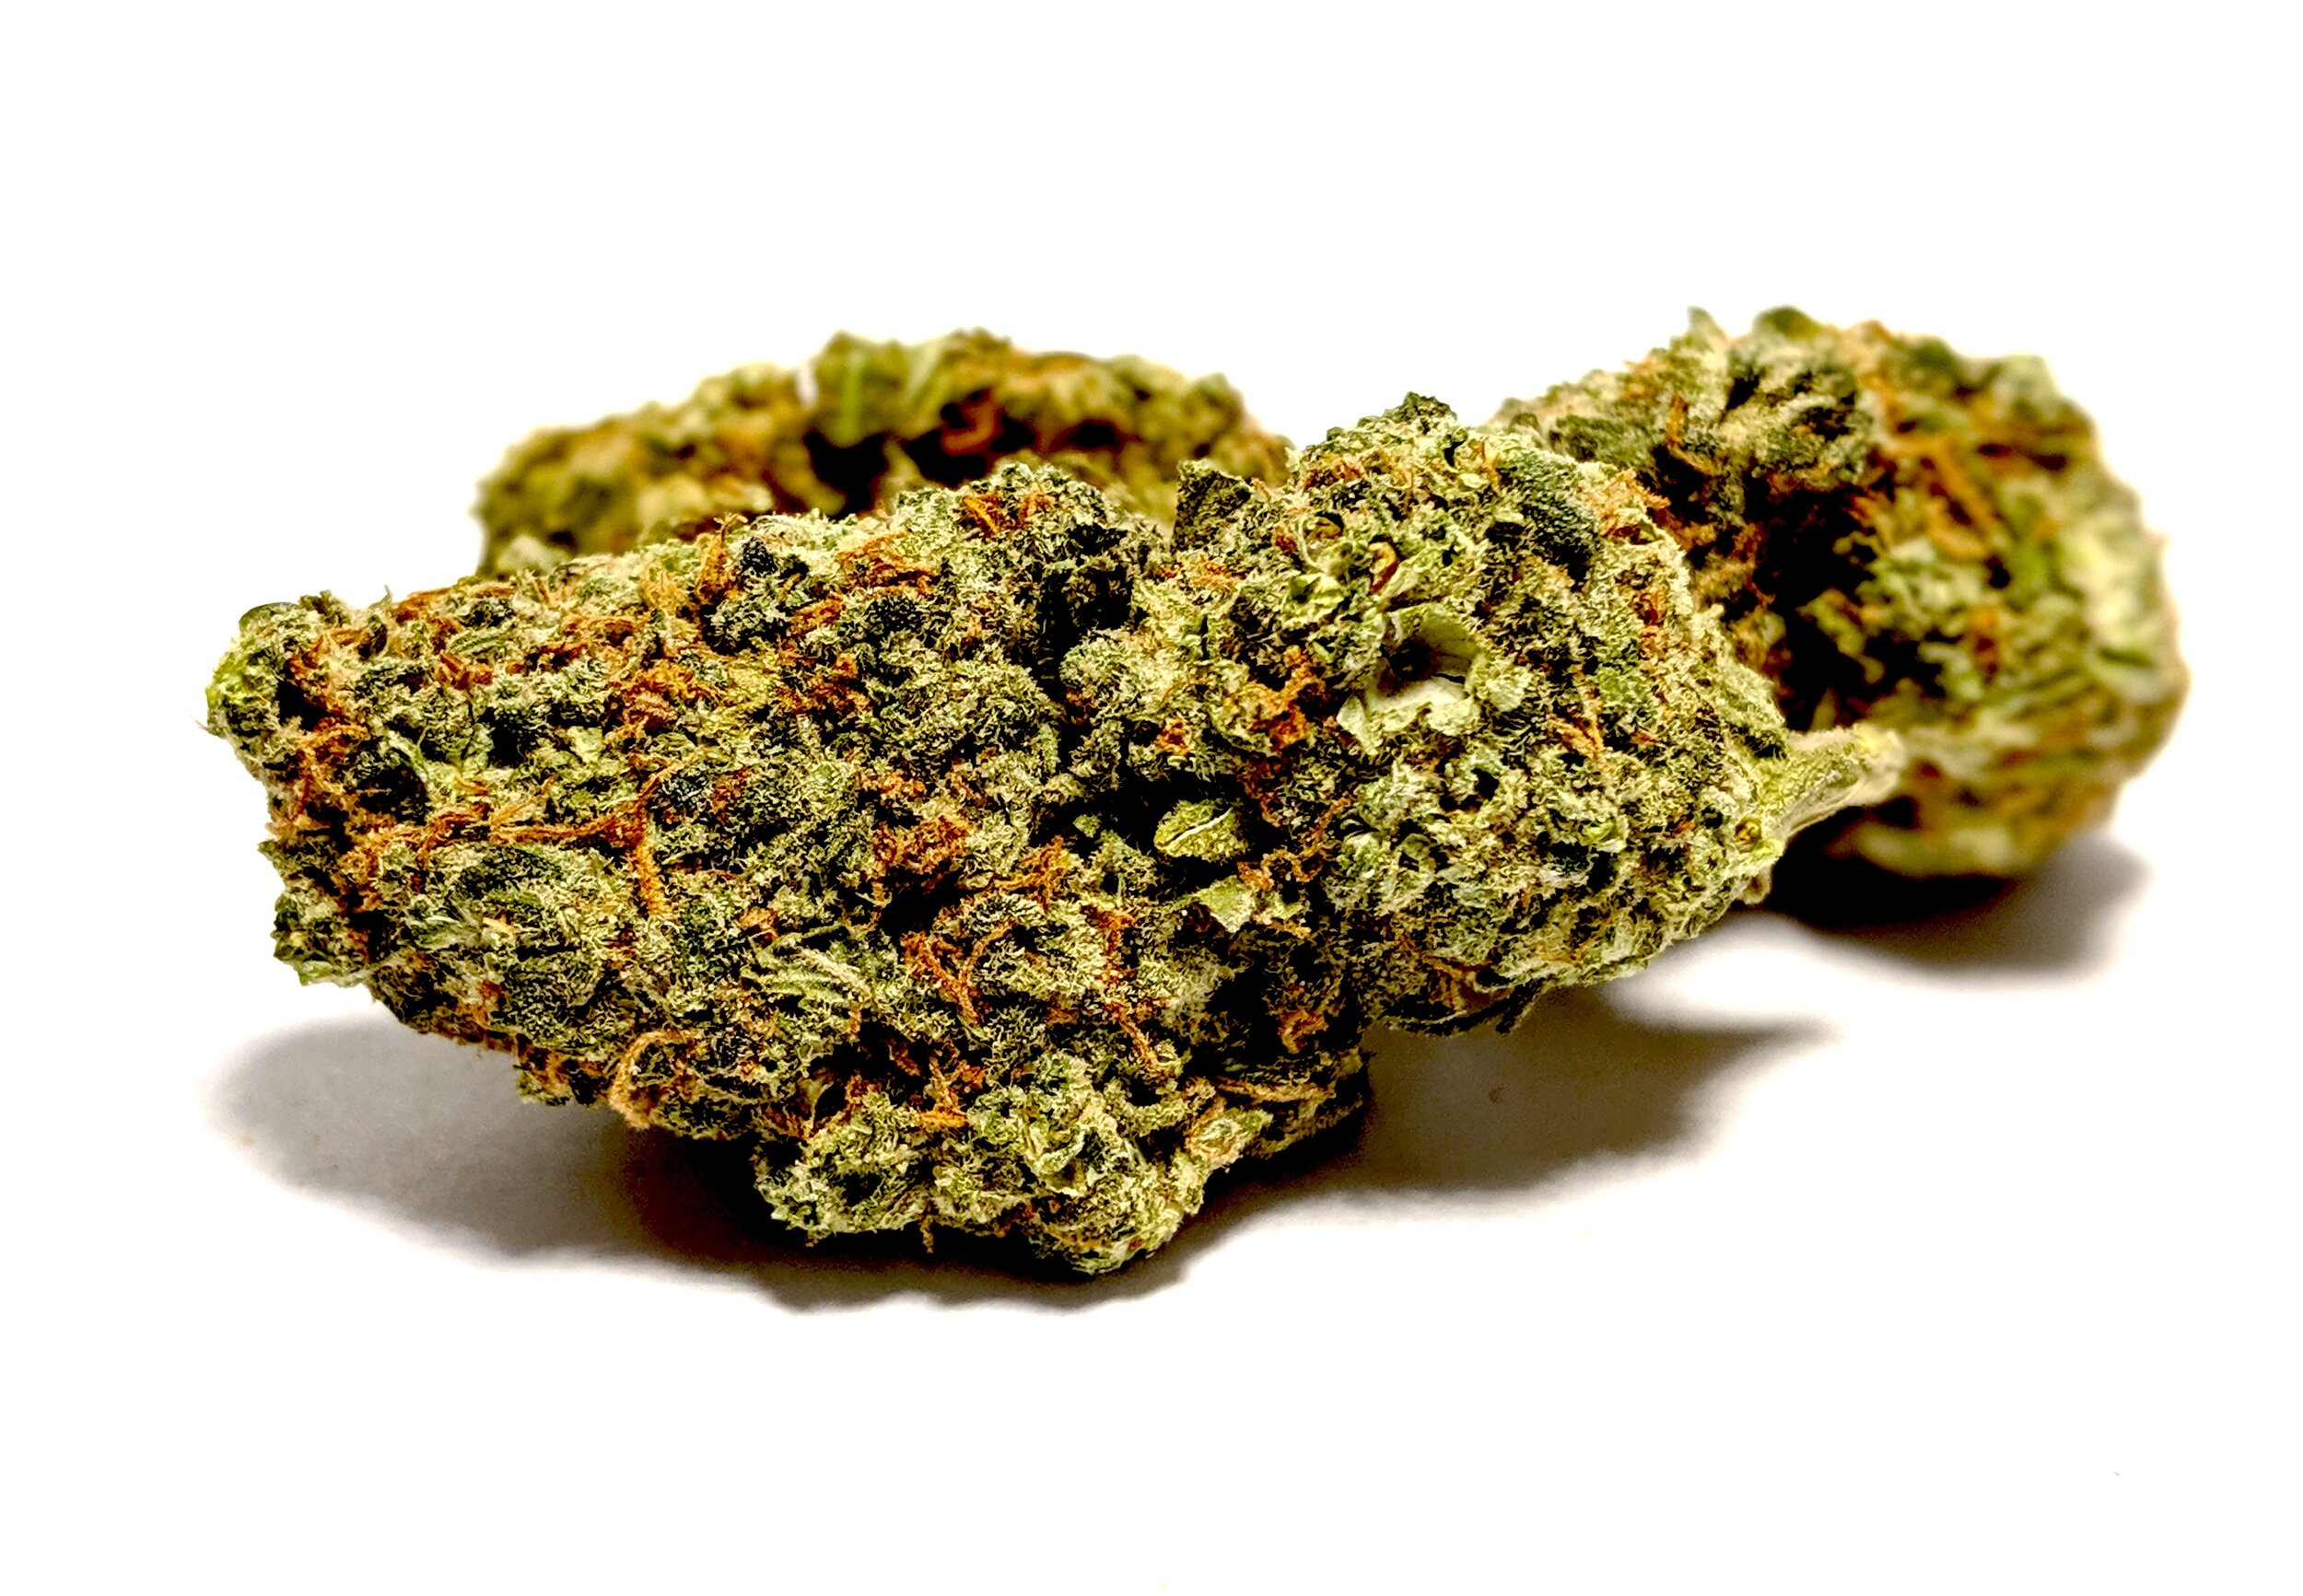 Blue Cheese- Indica    1/4- $60 1/2-$100 OZ-$180   The high from this strain can creep up slowly -- without the initial headrush that's associated with many cerebral sativa strains, this indica will gradually bring on a sense of physical relaxation and an altered way of thinking that may catch smokers by surprise. This mellow indica vibe is excellent for restfulness and de-stressing, but it won't necessarily lead to incapacitating couchlock -- although couchlock is a possibility with larger and larger doses. Blue Cheese's physical effects make it a good means of relief from minor aches and pains, as well as an aid to counteract insomnia. On the sativa side, Blue Cheese confers a mildly euphoric high that won't leave users trapped in a cerebral loop of recursive thinking. As such, it's a great option for treating anxiety, depression, and even some symptoms associated with PTSD. Its clearheaded and focused high is also beneficial for those with attention deficit disorders. Blue Cheese can also be a strong appetite stimulant, for better or worse.